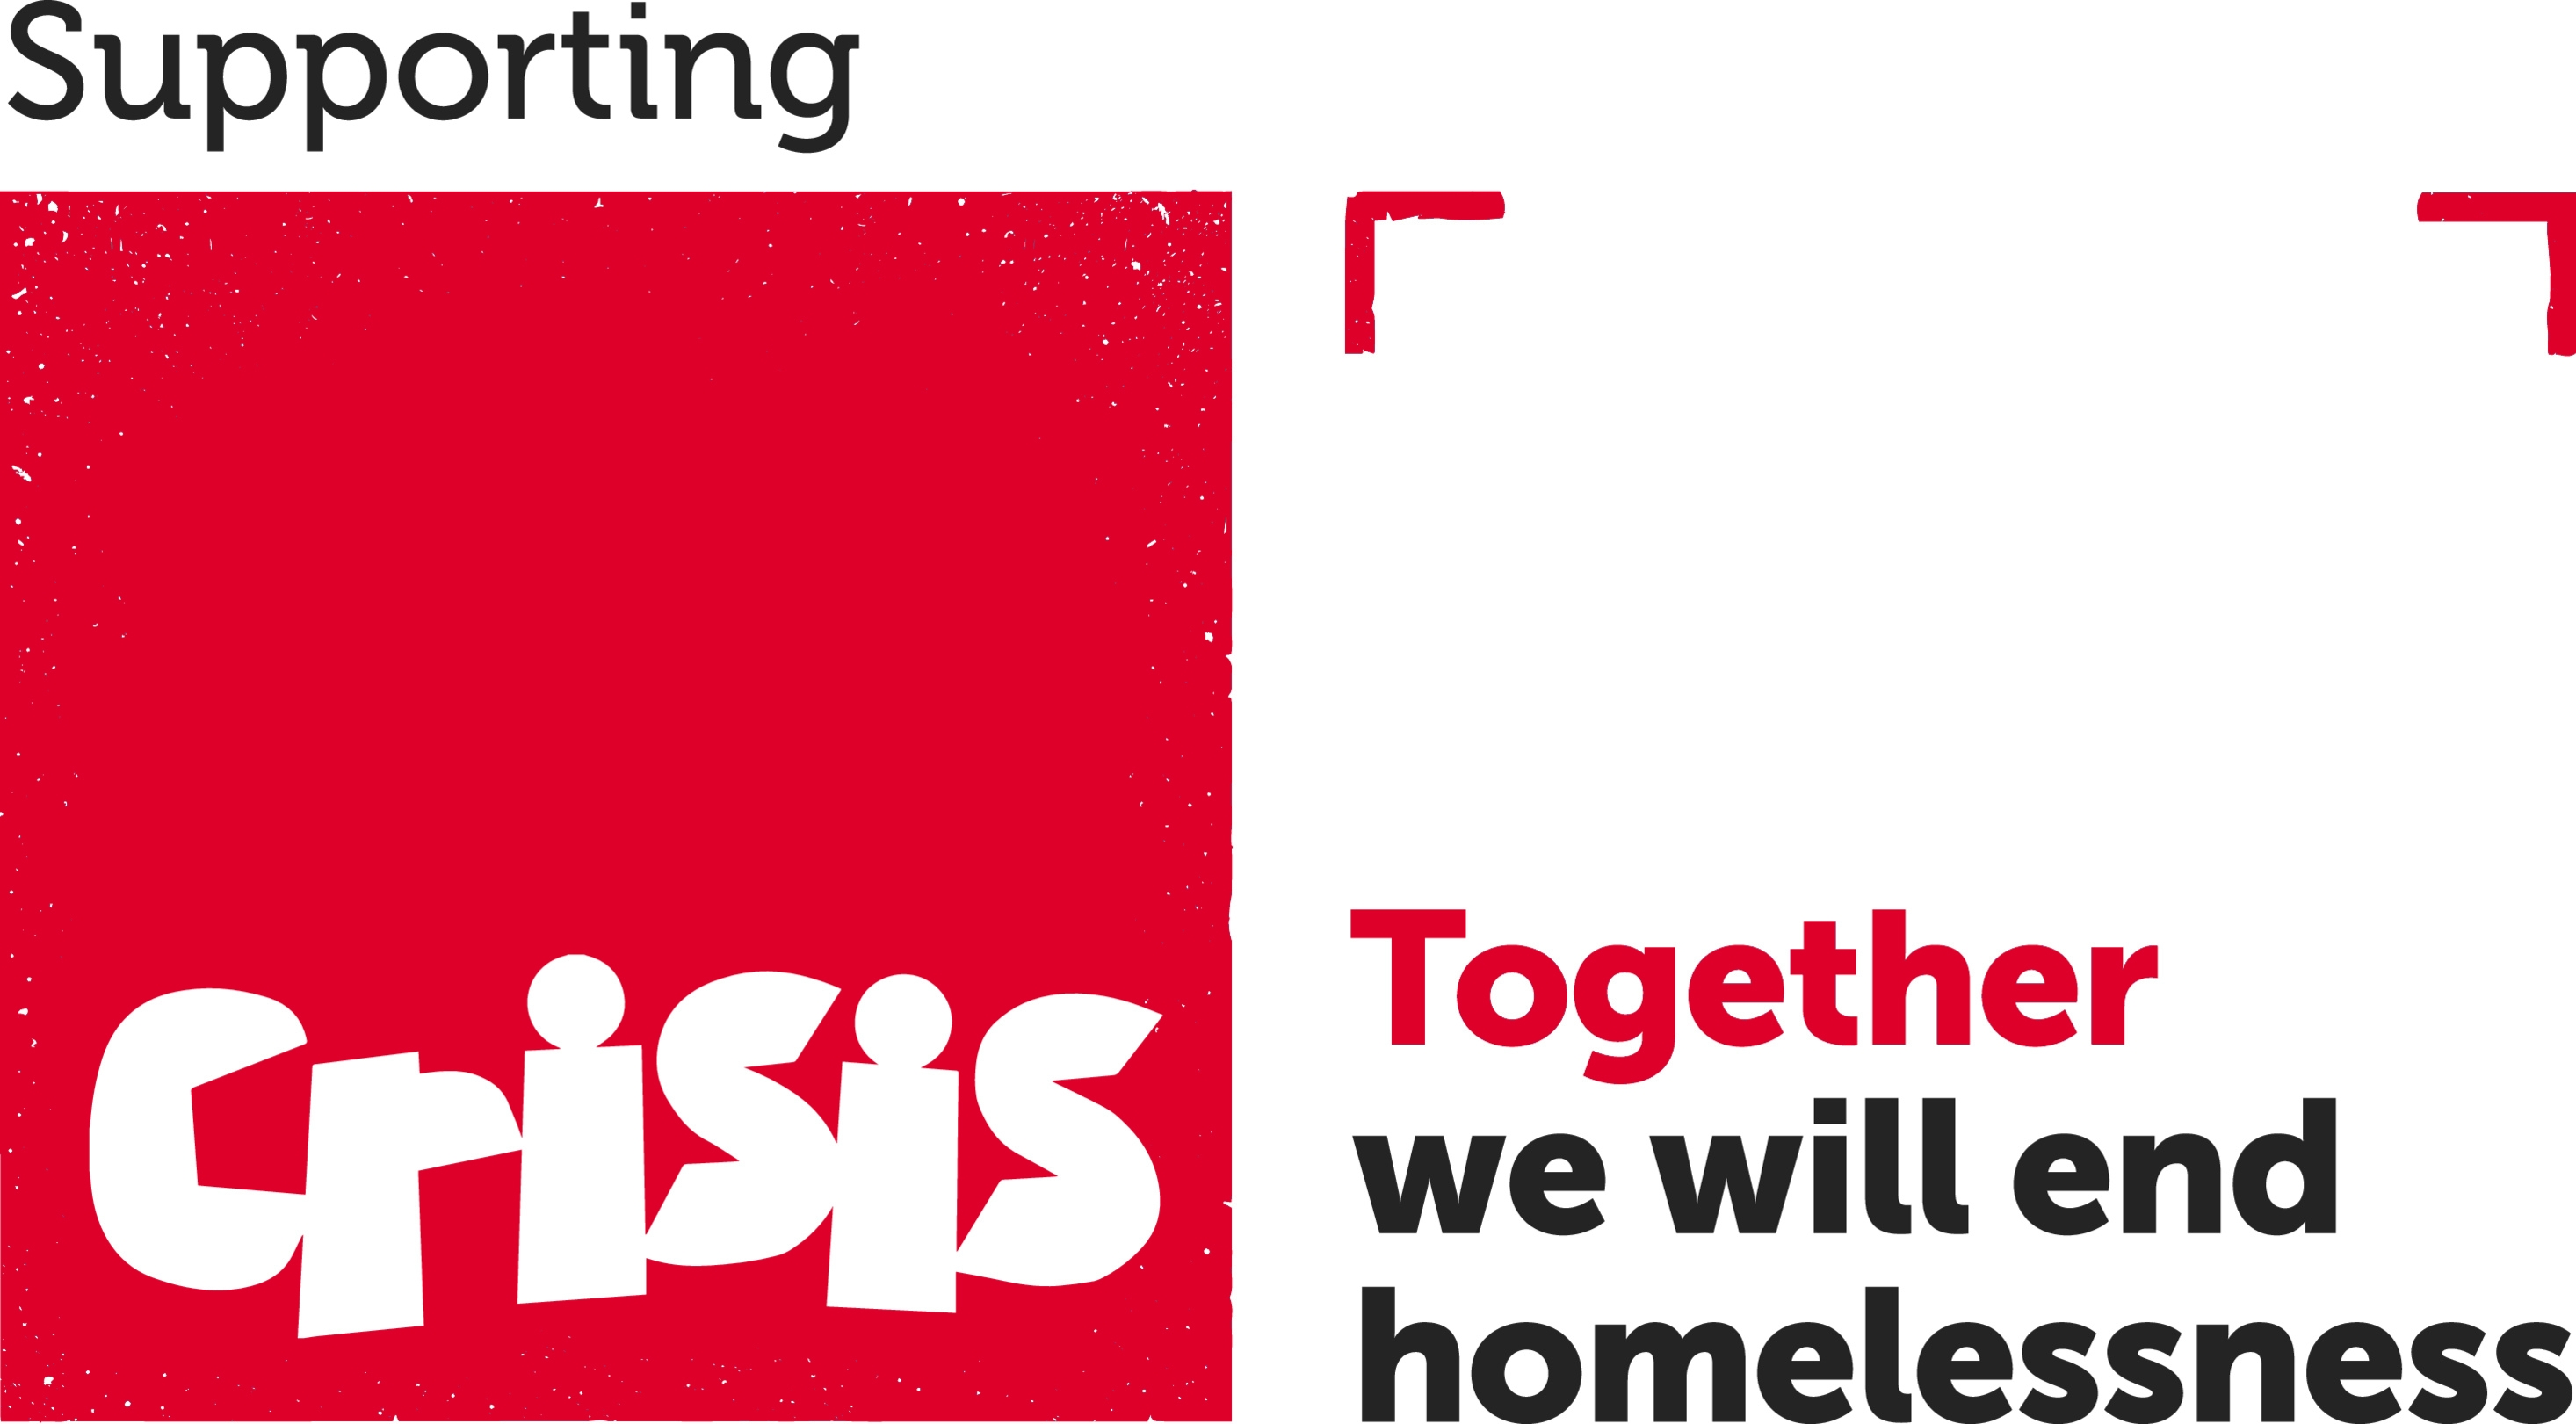 Supporting Crisis Logo Jpg